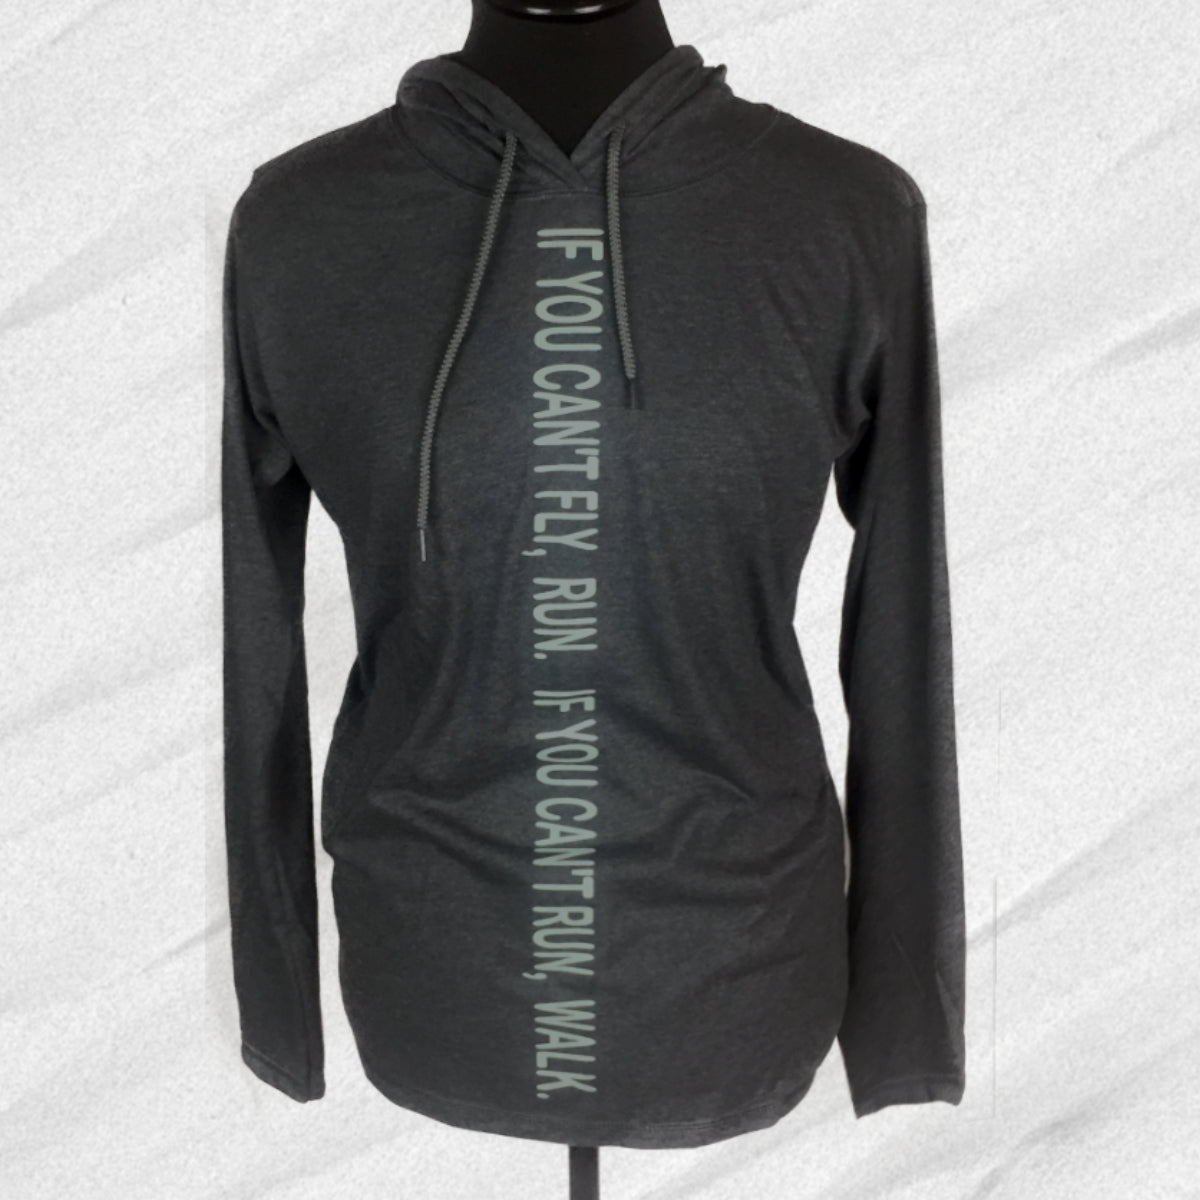 Keep Moving  - Motivational Quotes - Women's Hooded Long Sleeved T-shirt